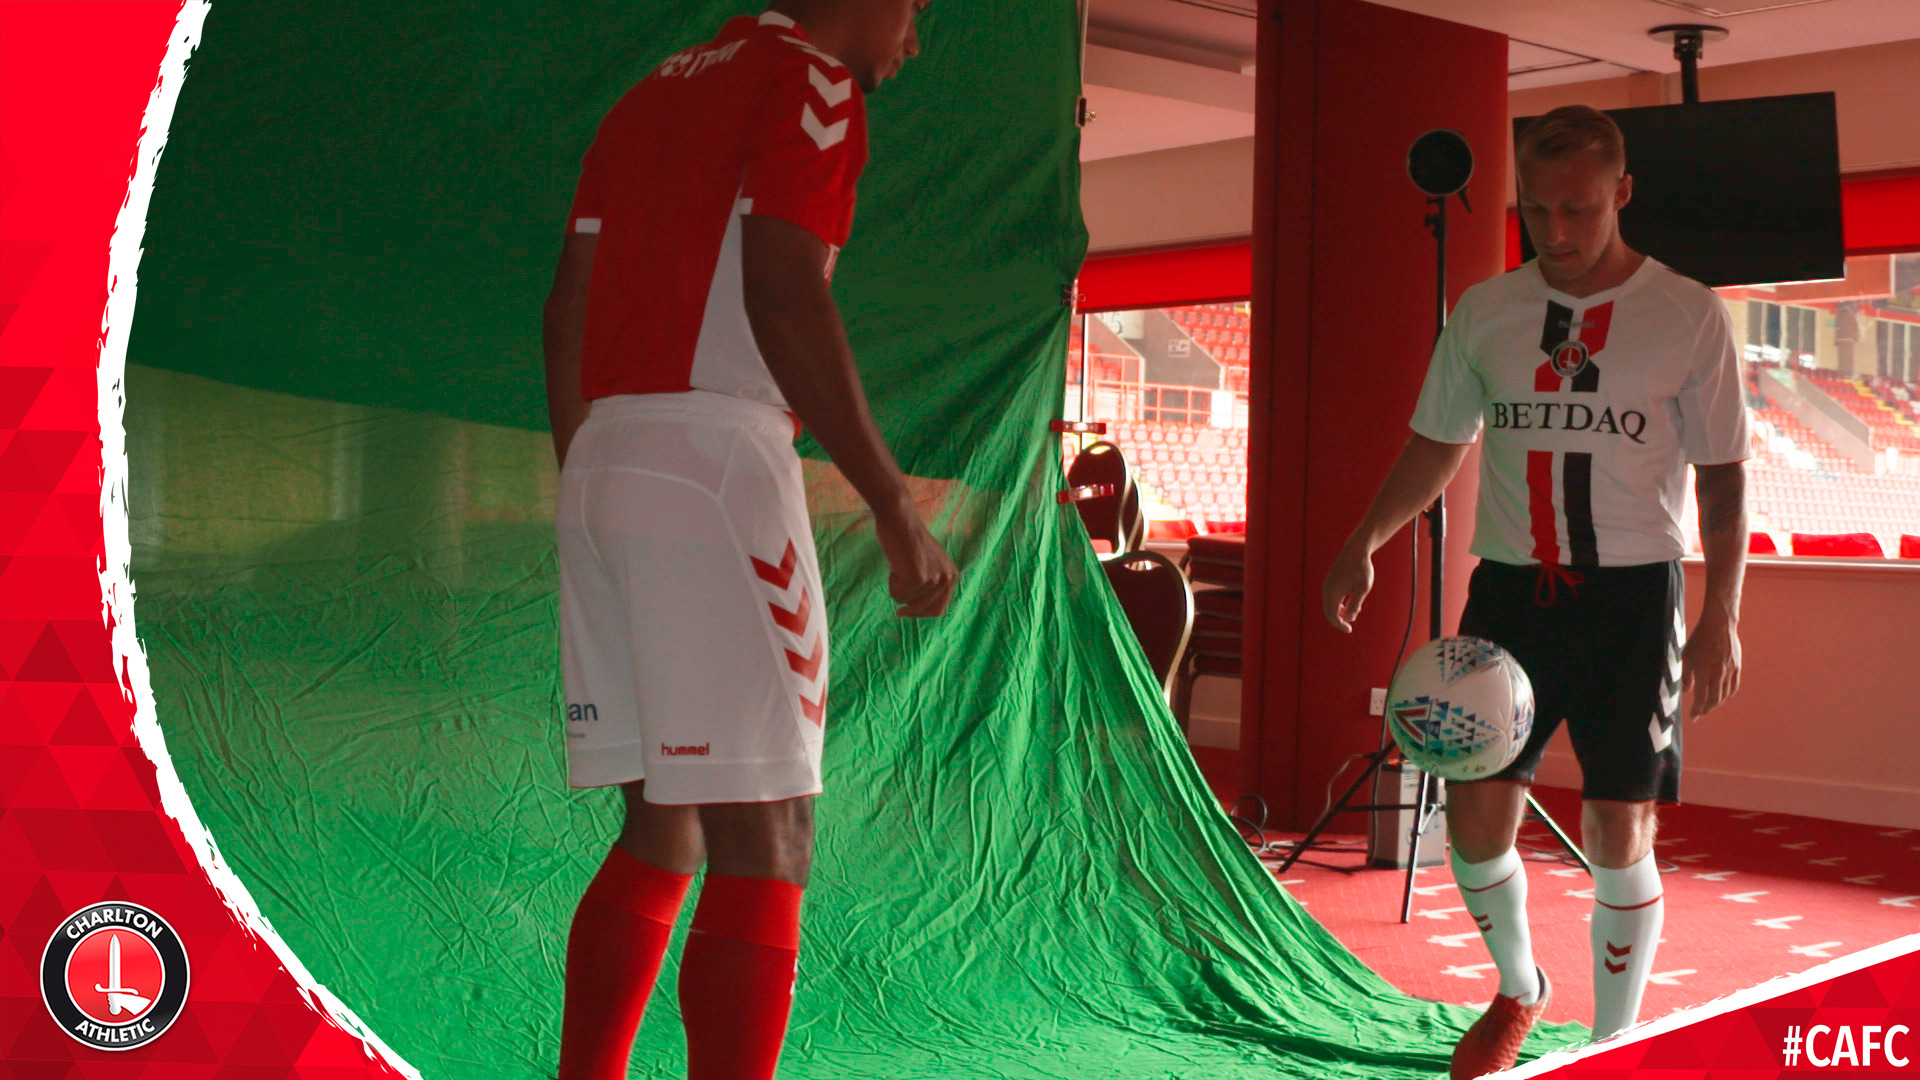 BEHIND THE SCENES | Kit photoshoot 2018/19